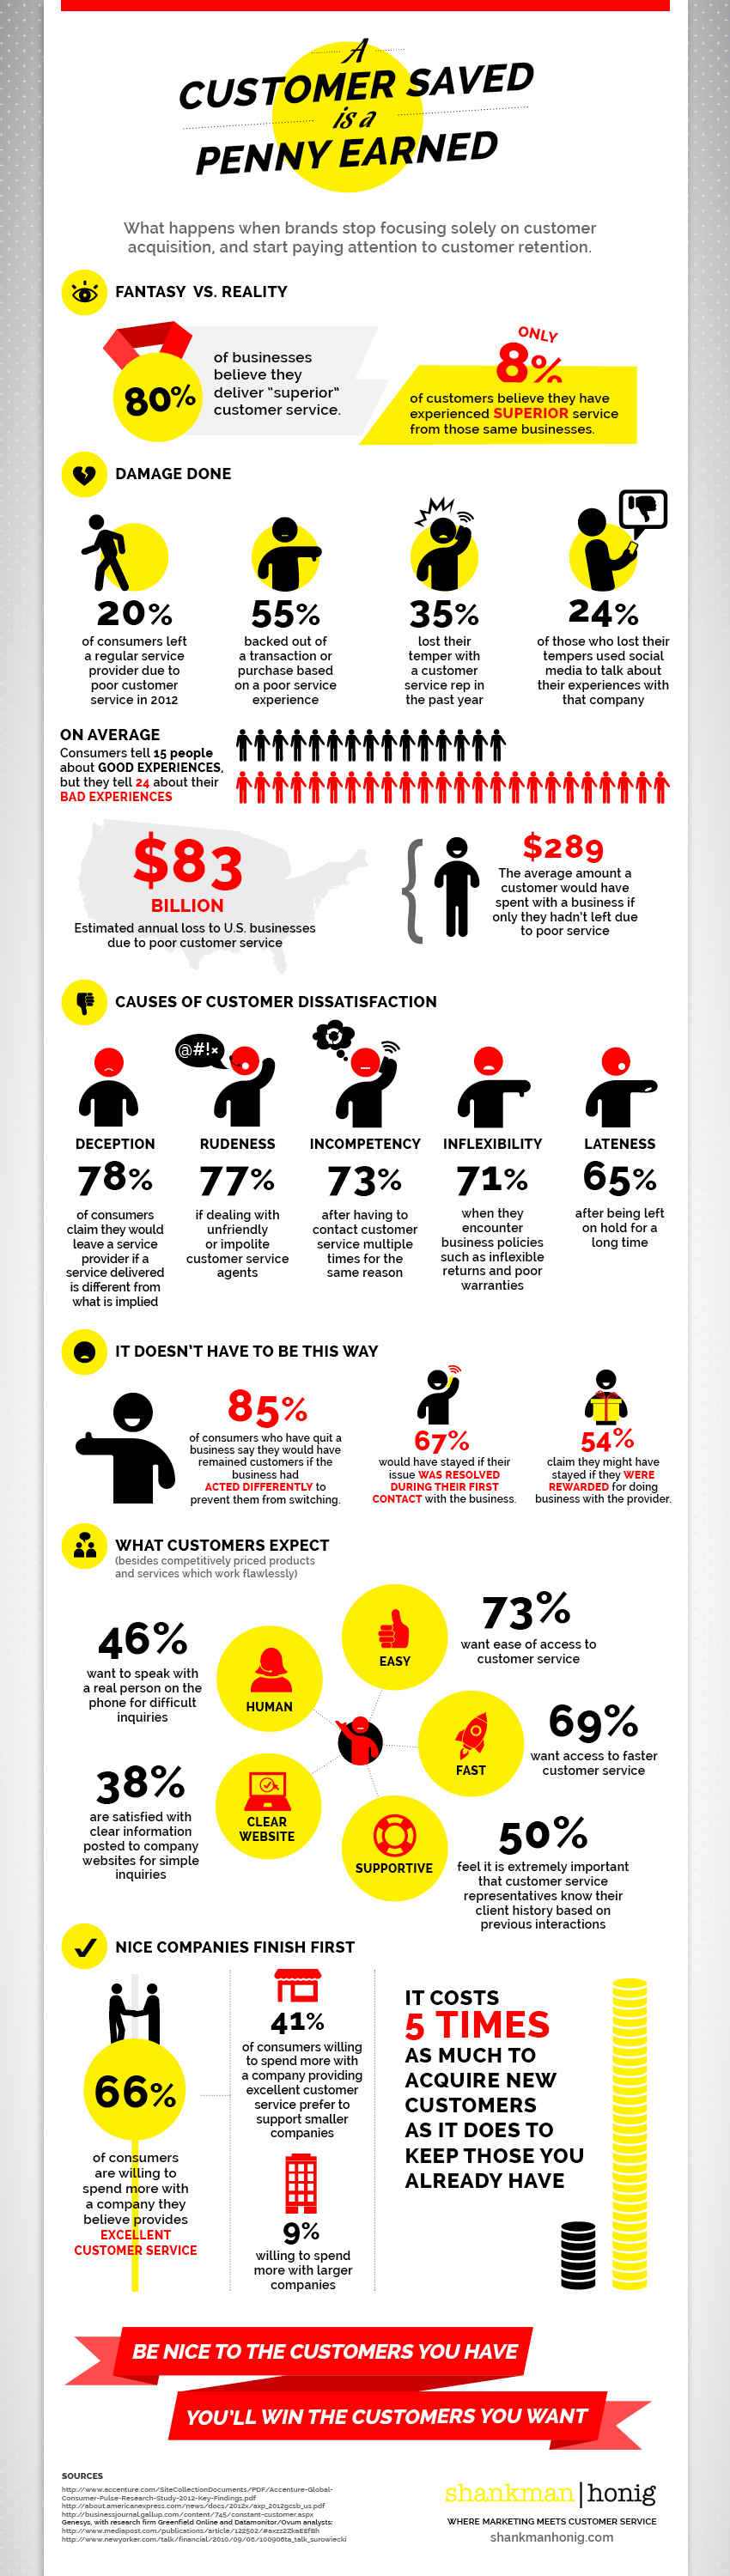 A Customer Saved Infographic